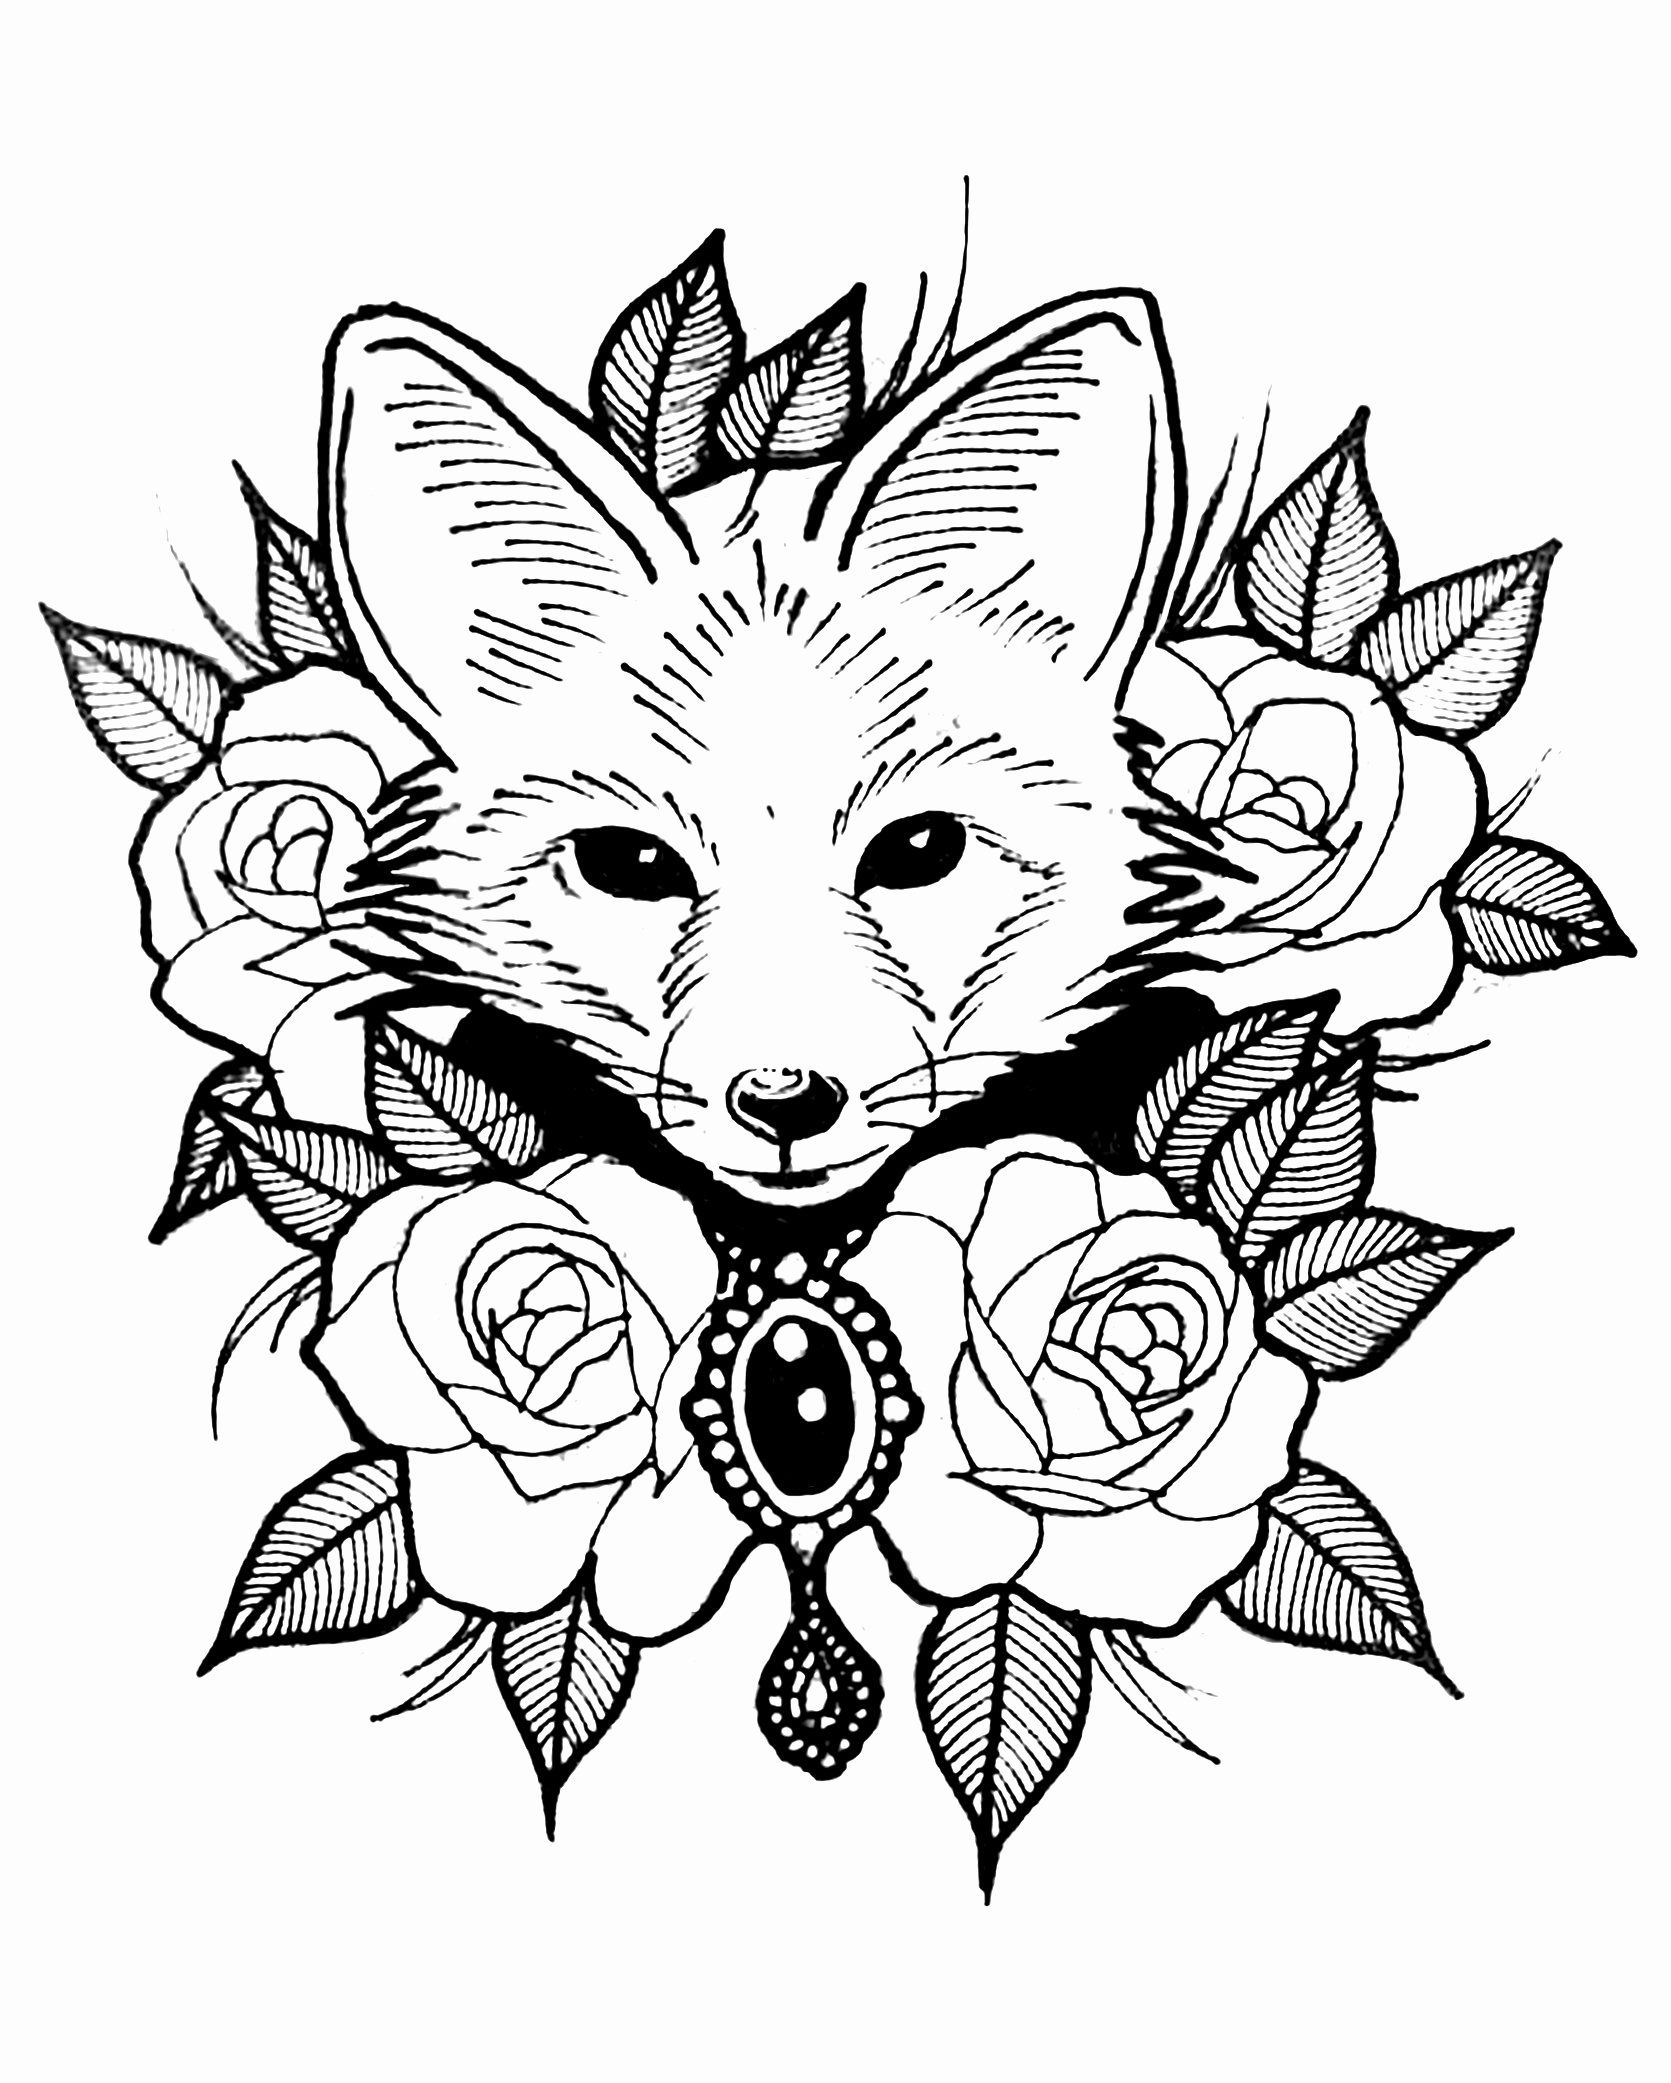 Animal Coloring Pages Adult Inspirational Coloring Pages Cute Animal Free Clipart Farm Anima In 2020 Fox Coloring Page Animal Coloring Books Farm Animal Coloring Pages